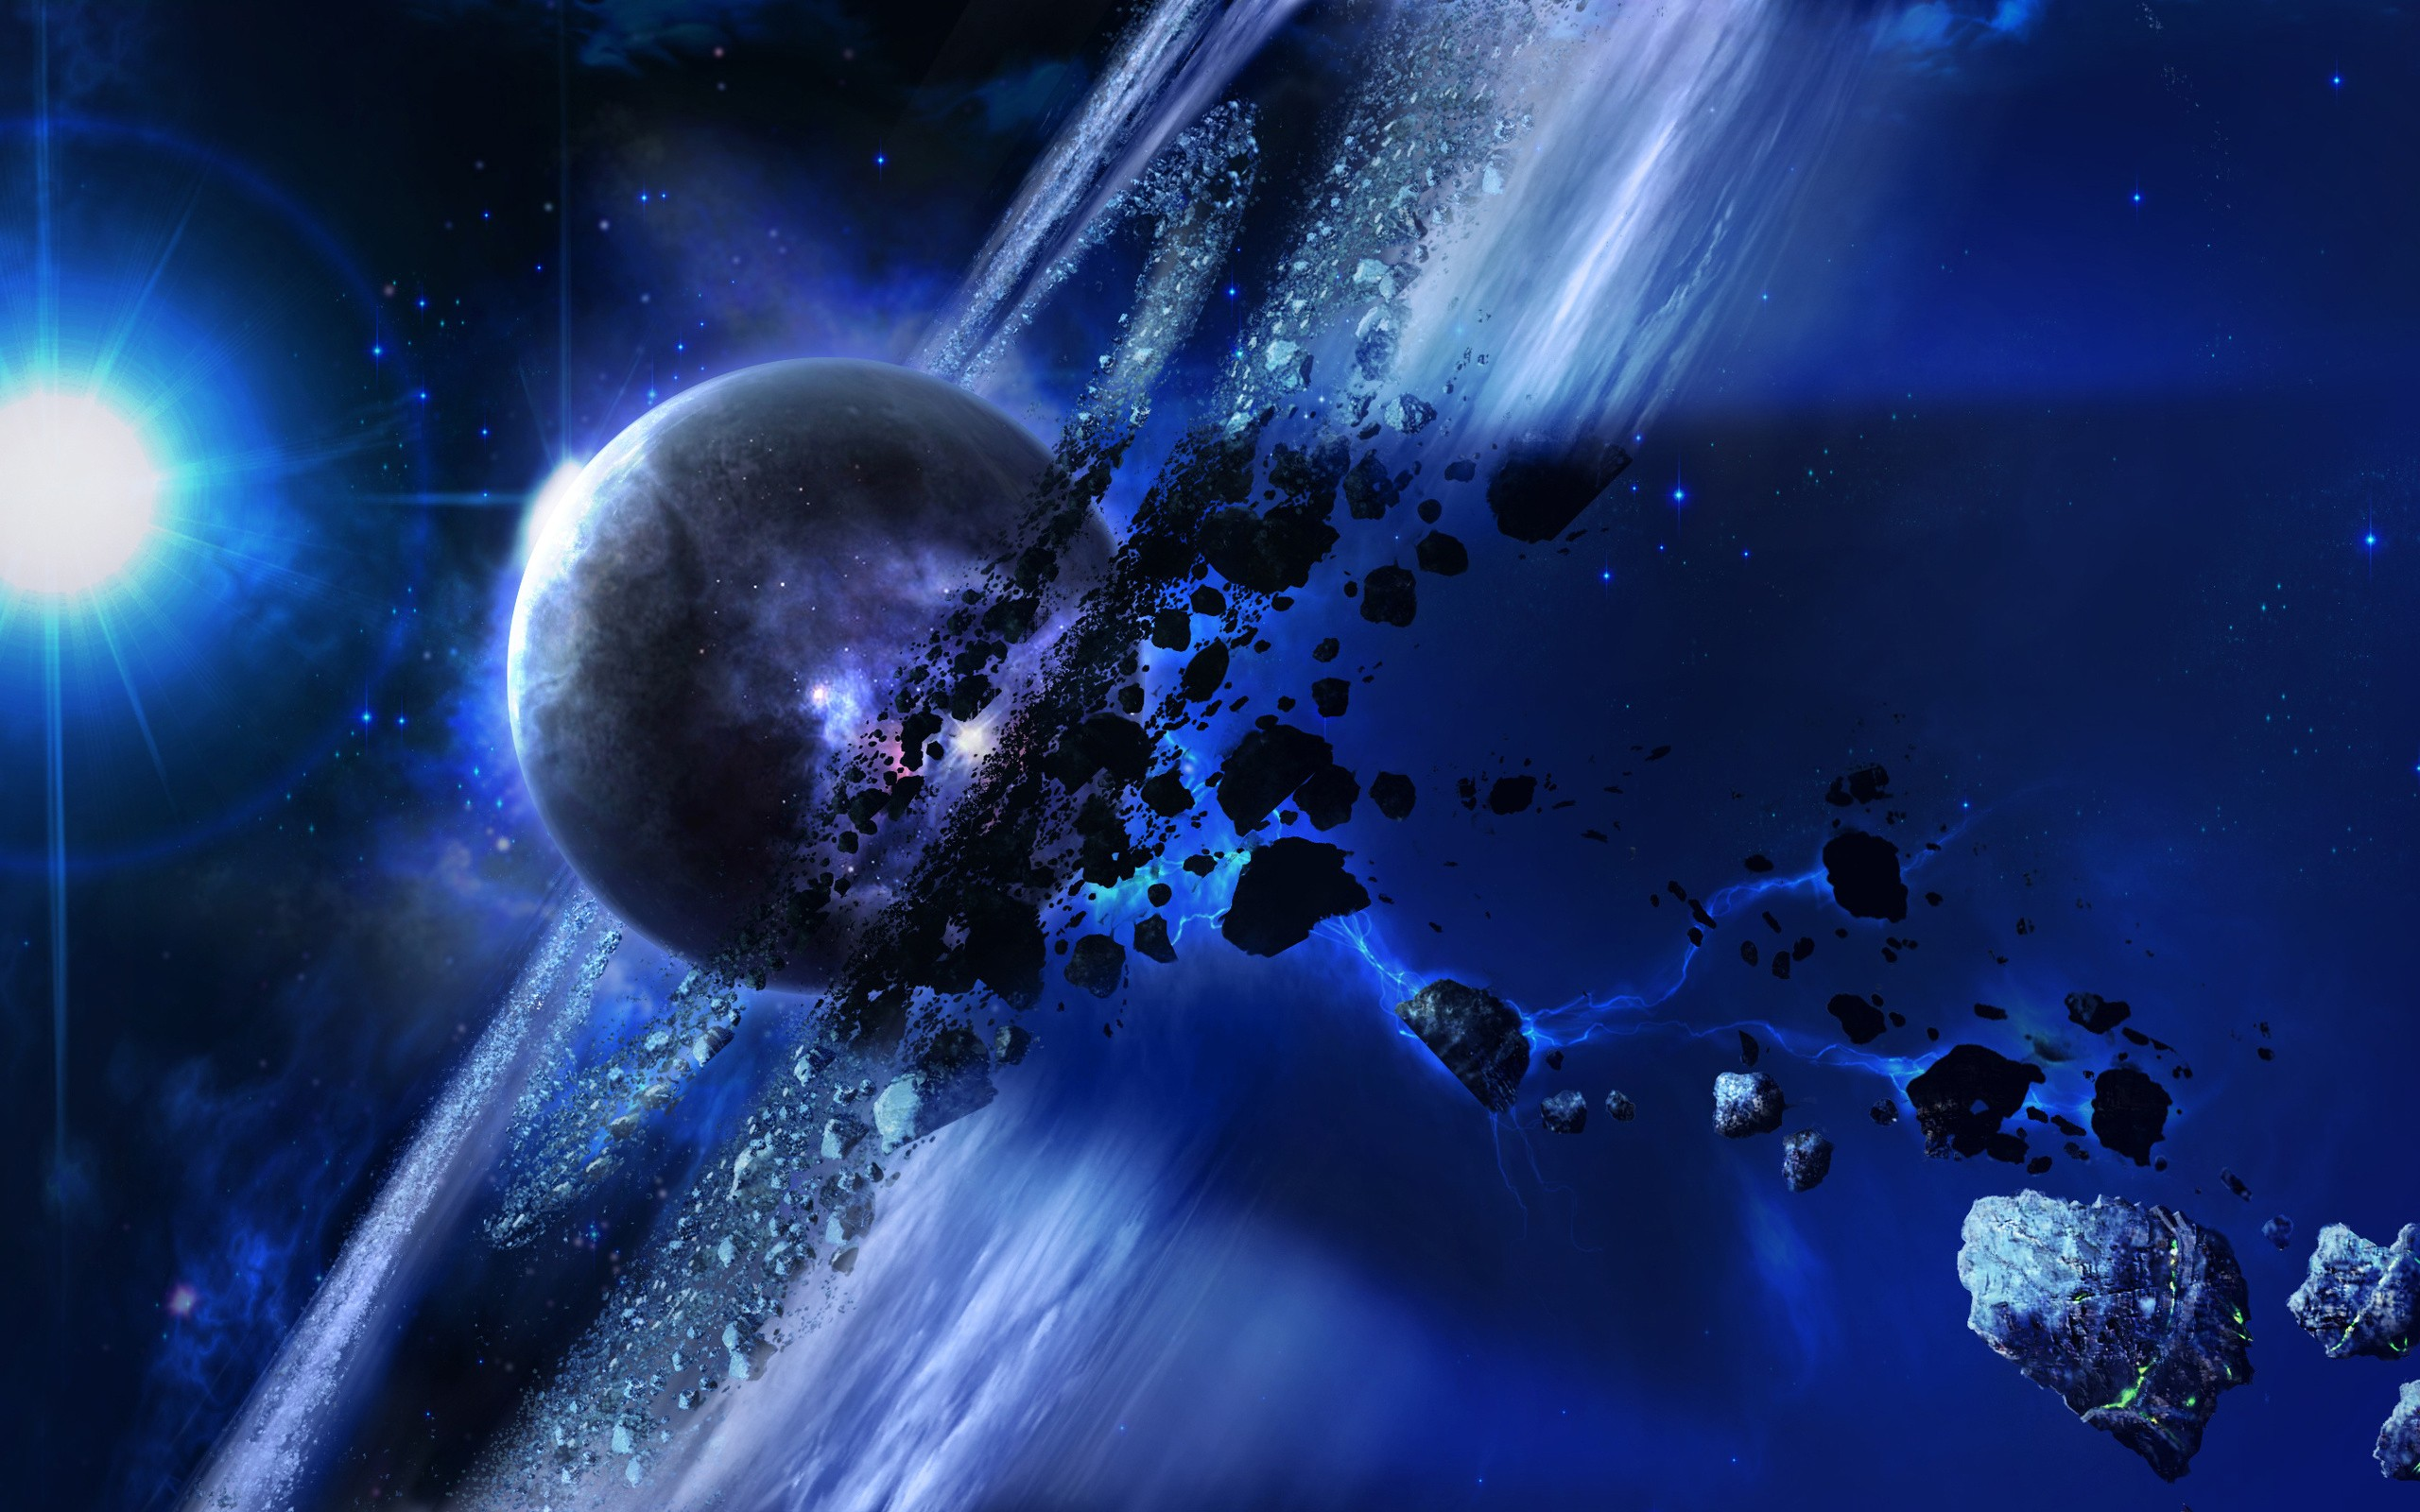 Outer Space Wallpaper 2560x1600 Outer Space Planets Artwork 2560x1600